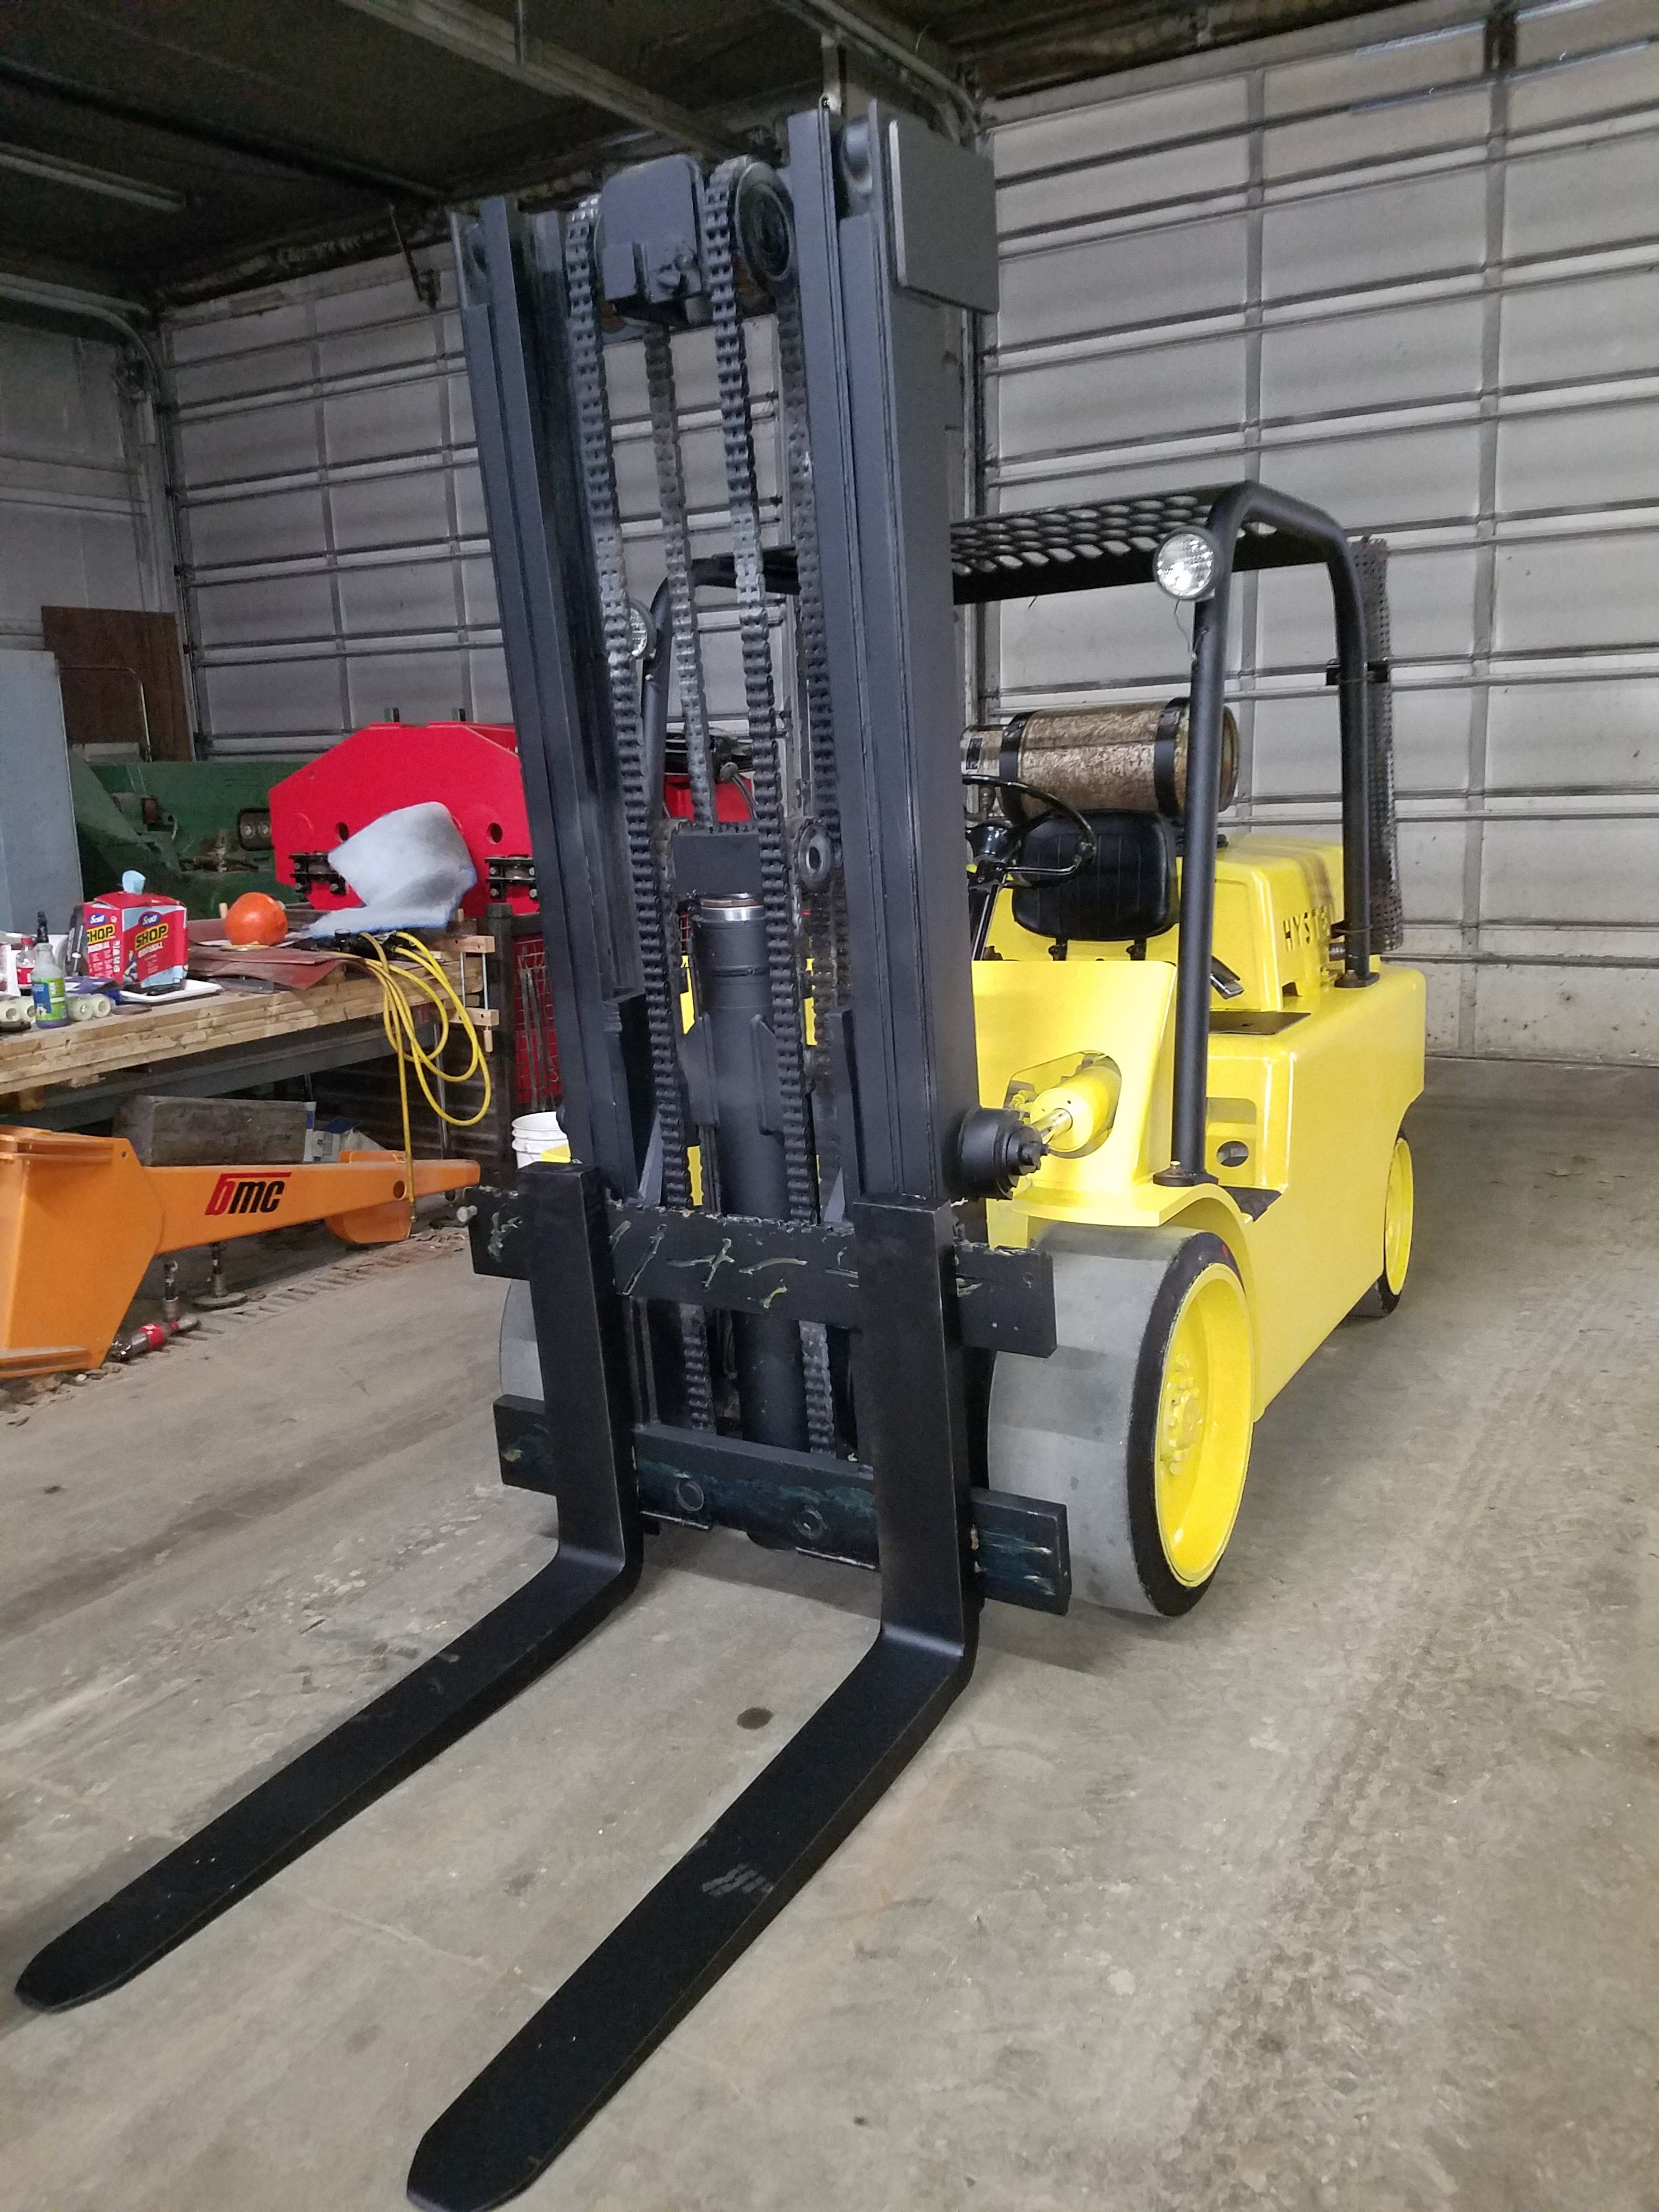 15,000lb. Capacity Hyster S-150 Forklift For Sale 15kCapHysterS150FLFS2